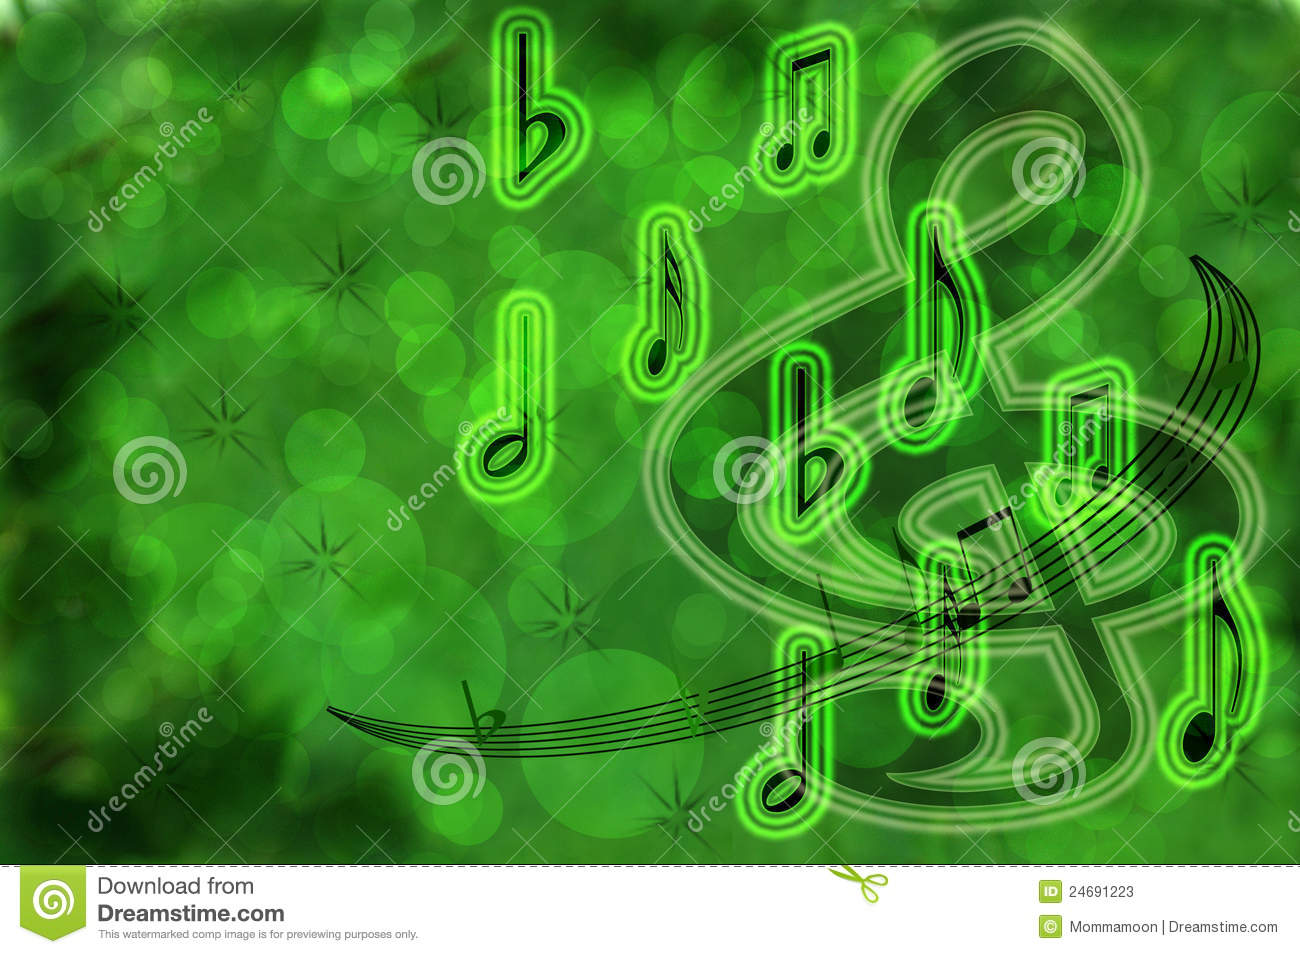 Neon Music Notes Wallpaper: Neon Green Musical Background Stock Photos